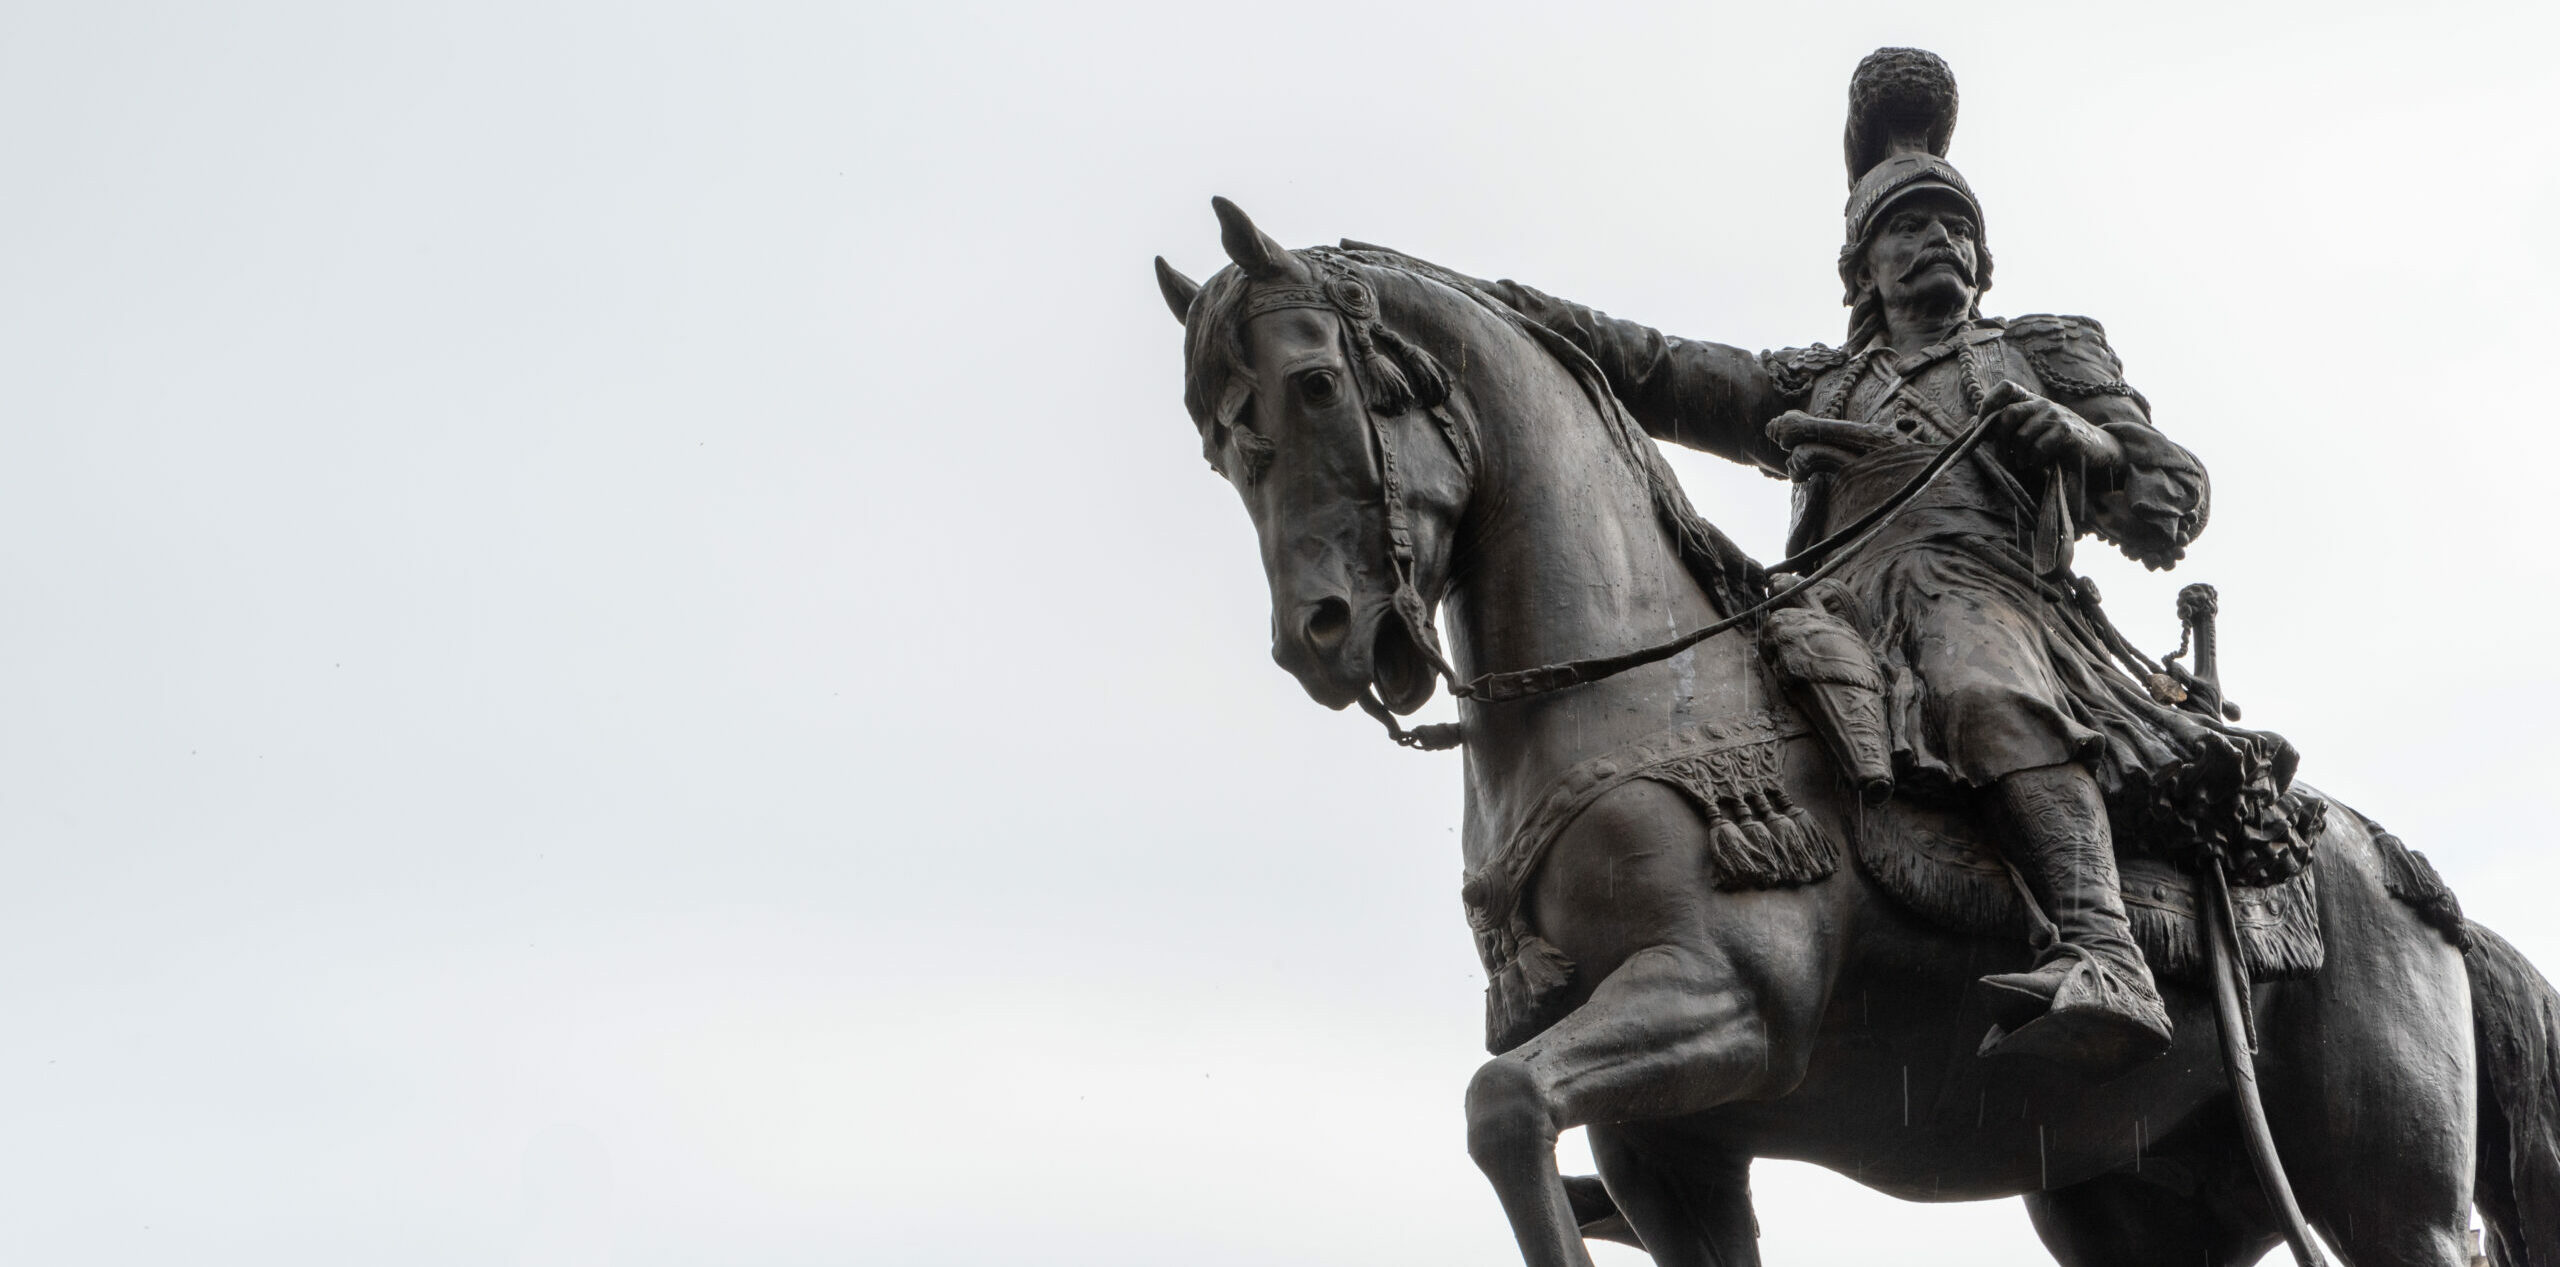 What is Theodoros Kolokotronis pointing at, and what's curious about the stance of his horse?